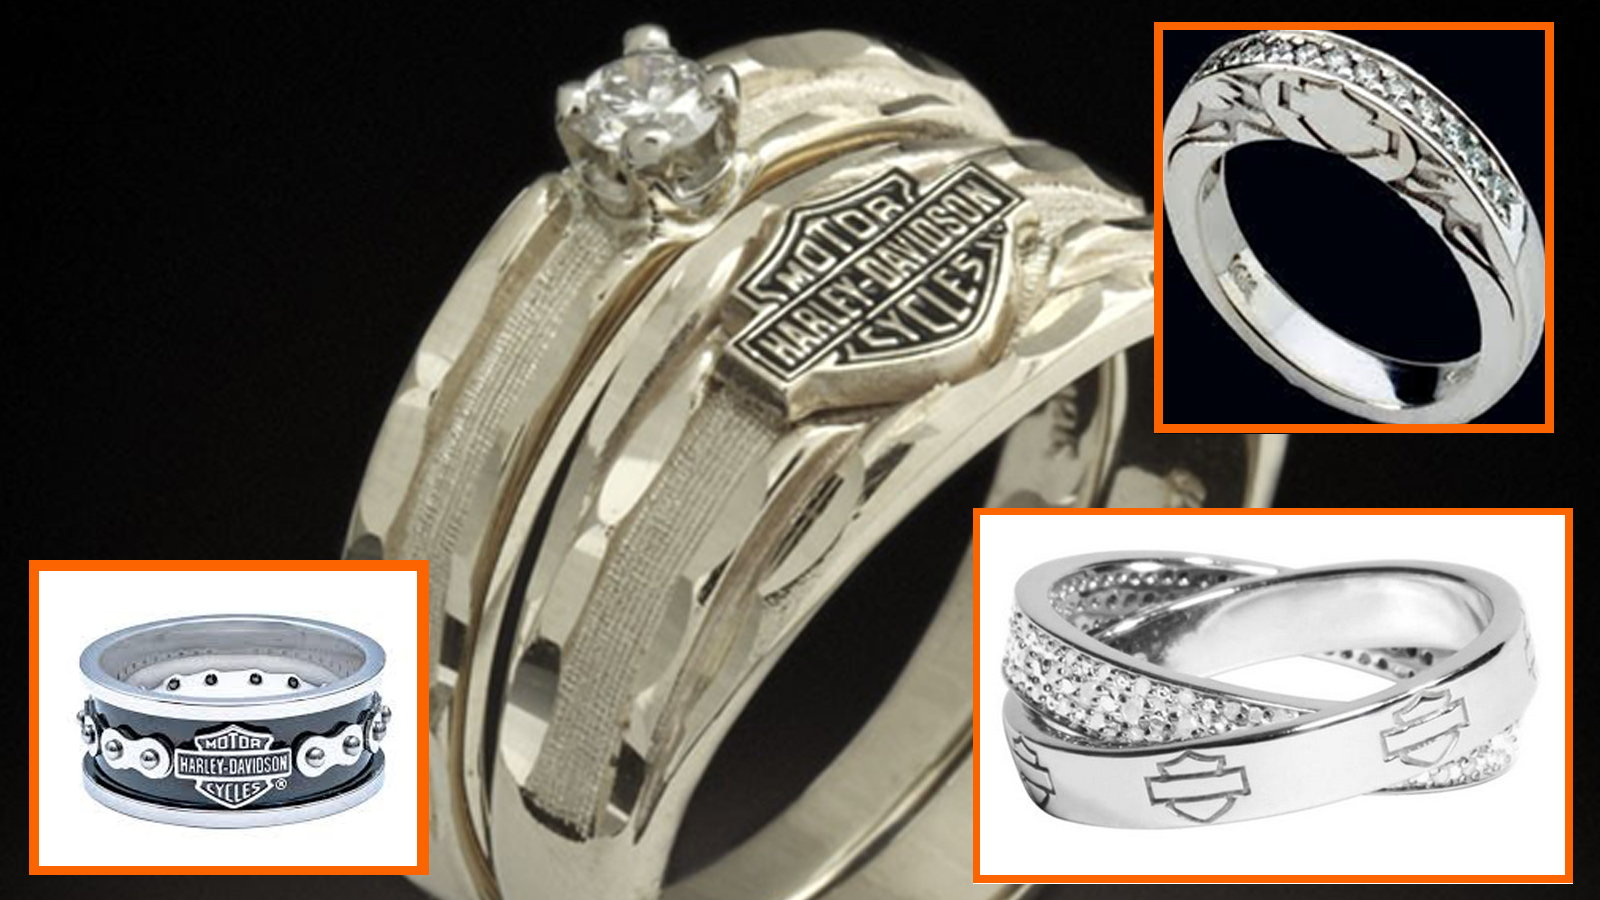 11 things you need for a harley davidson themed wedding harley davidson wedding bands Wedding rings are something personal for a couple If Harley Davidson is what brought you two together why not remember it forever by wearing it on your